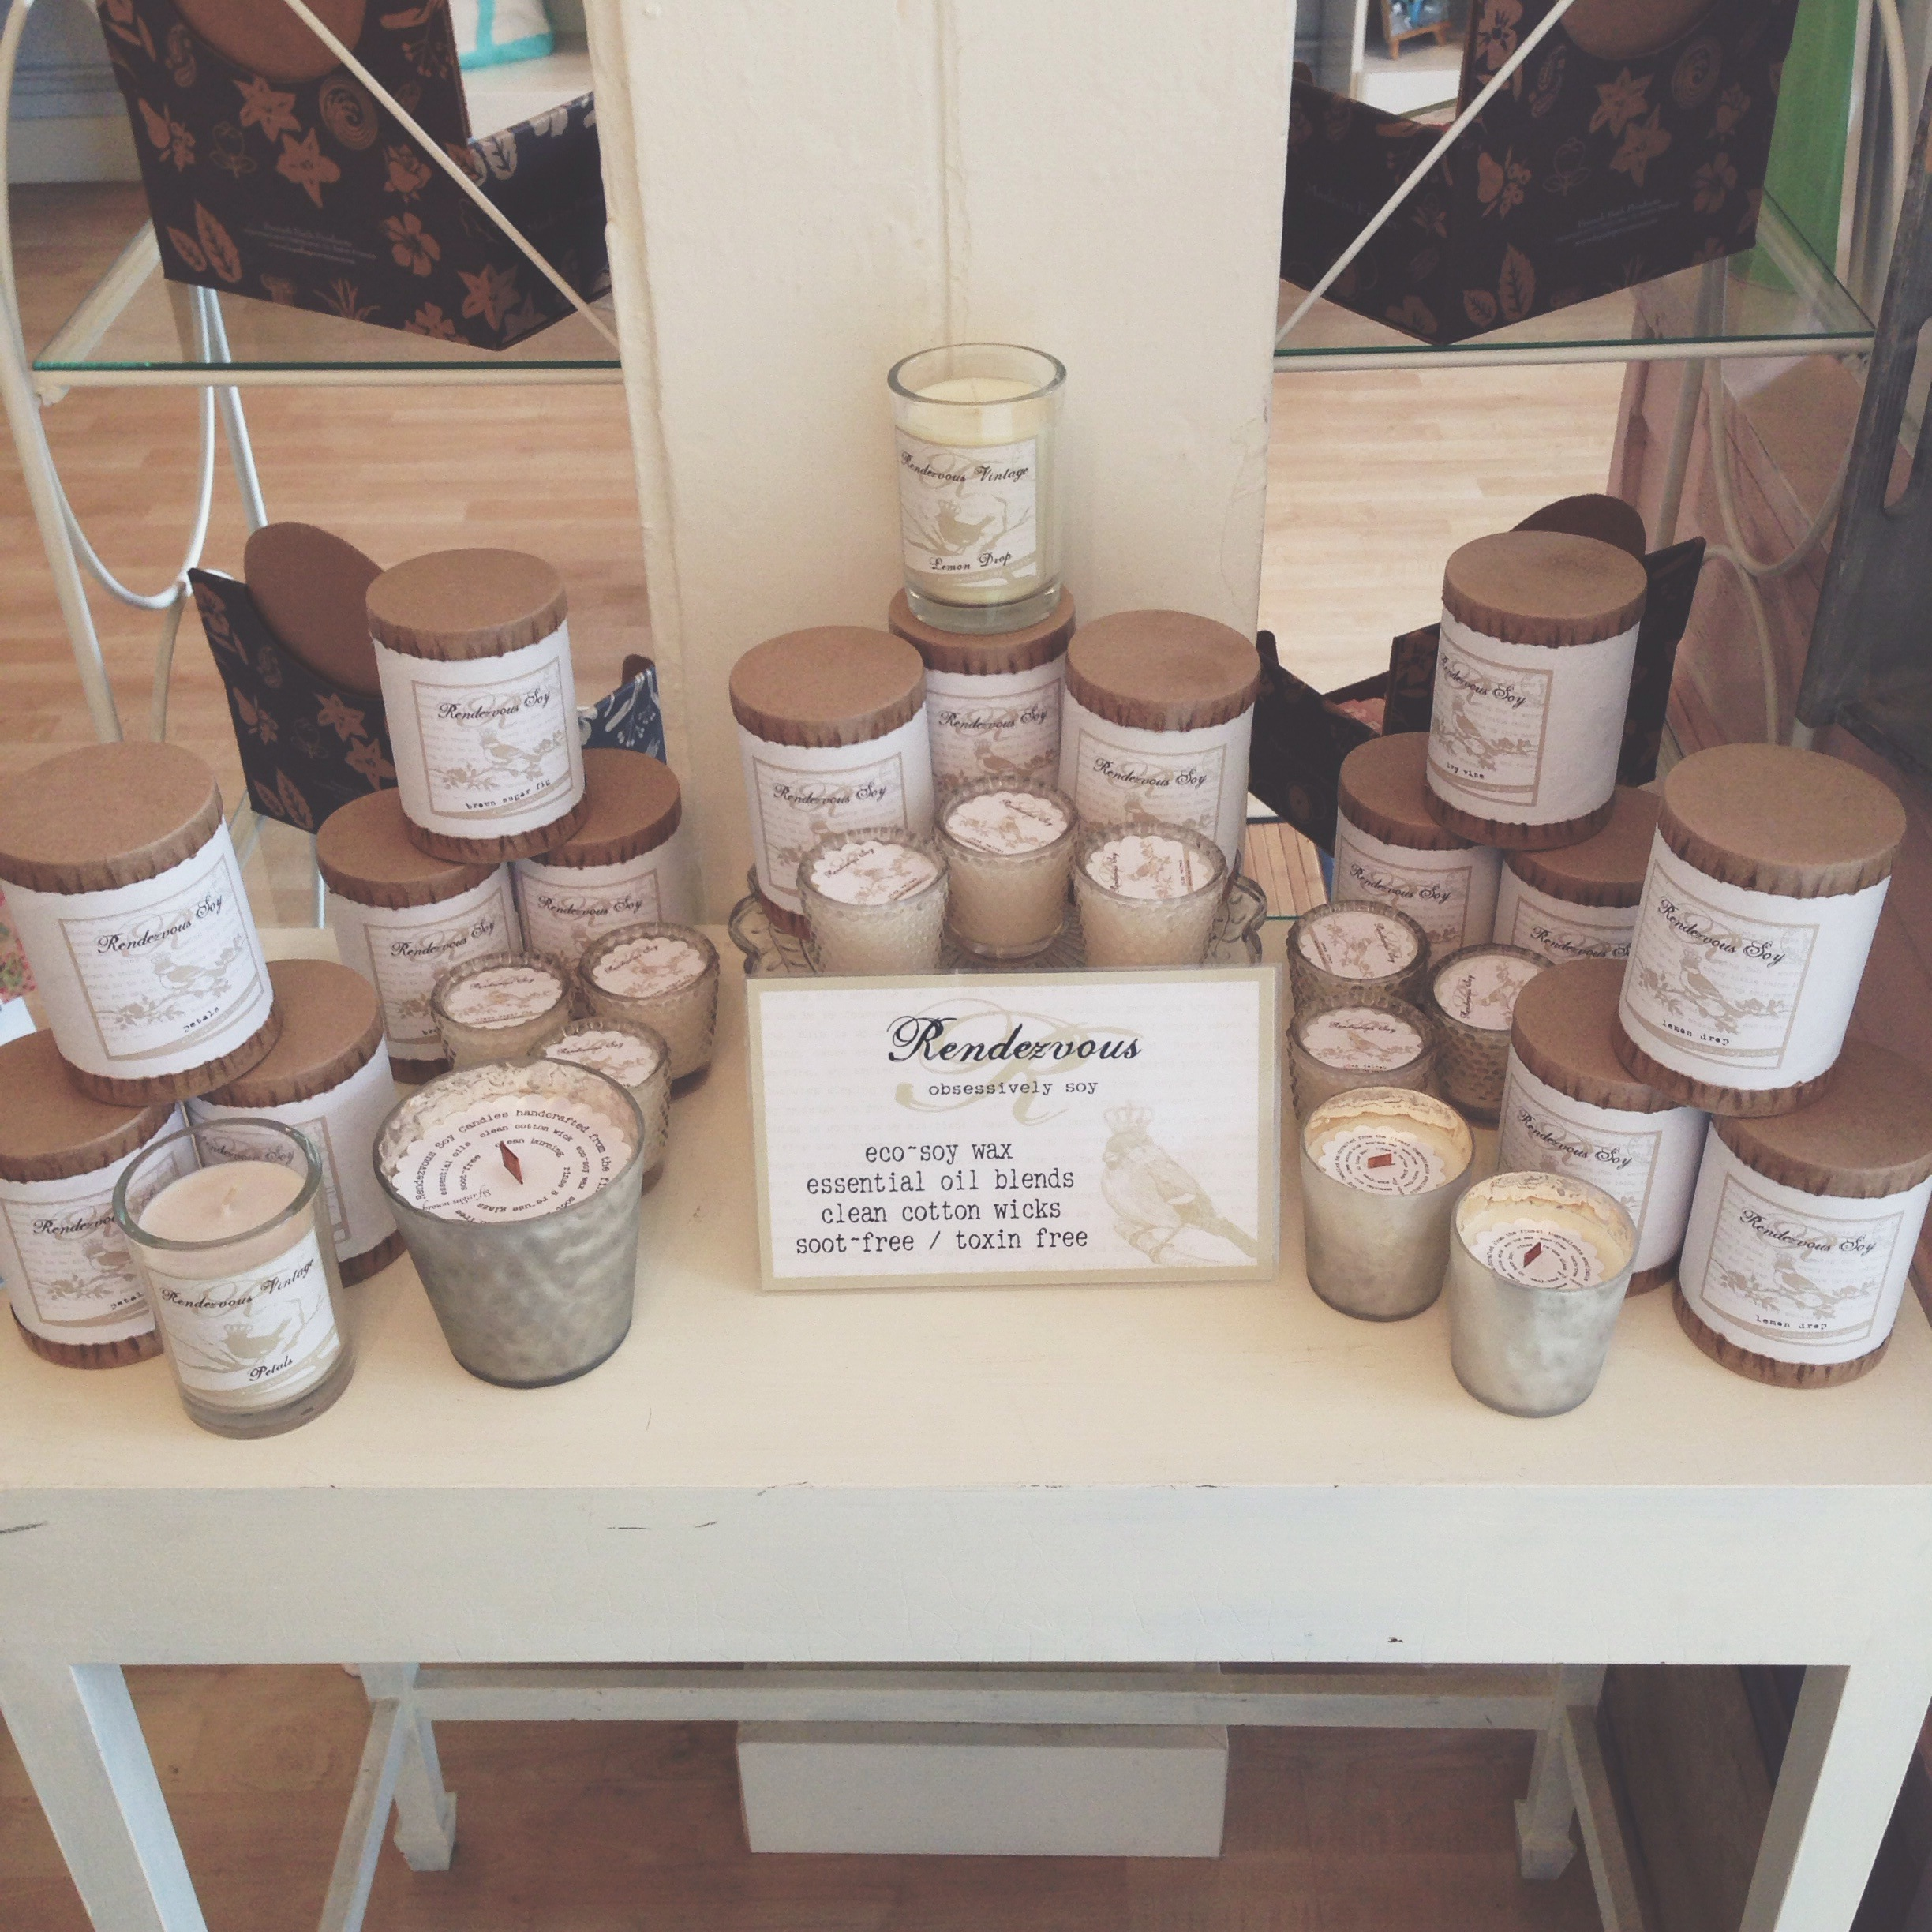 Rendezvous Candles starting at $10